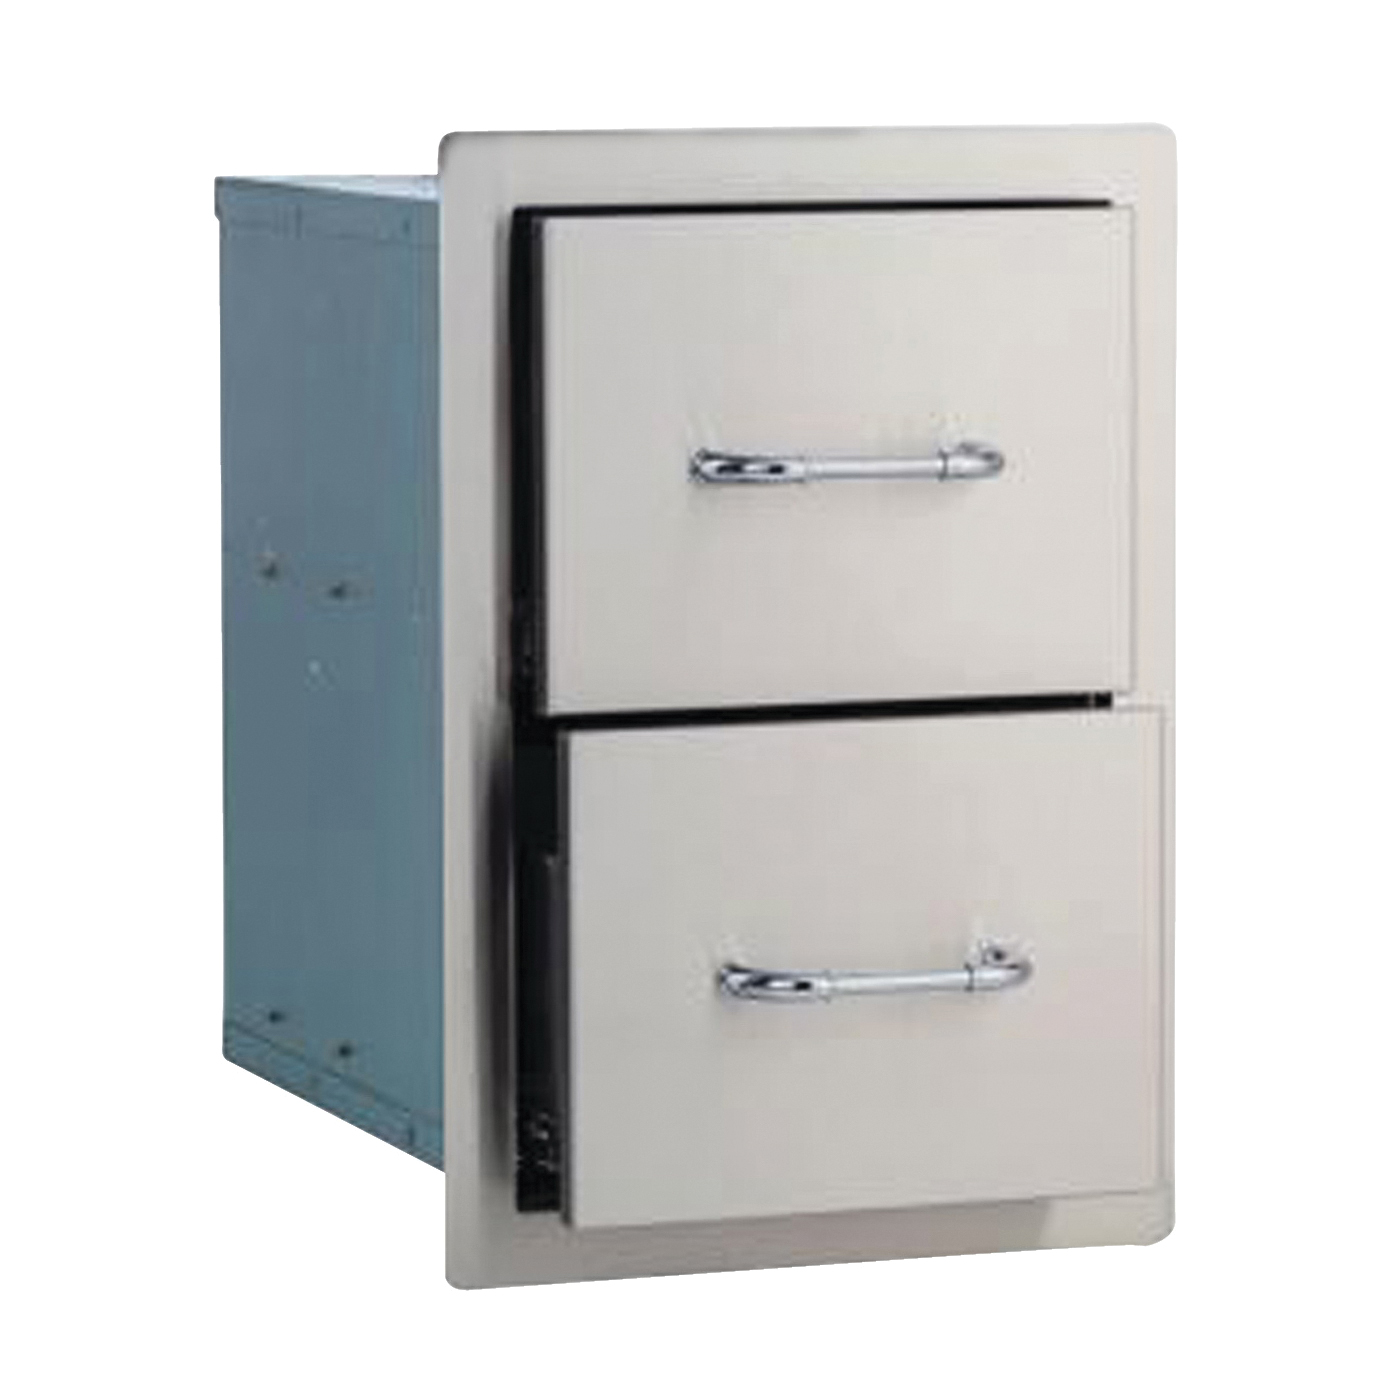 Picture of BULL 56985 Double Drawer, 20-3/4 in L, 12-3/4 in W, 19-1/2 in H, 2 -Drawer, Stainless Steel